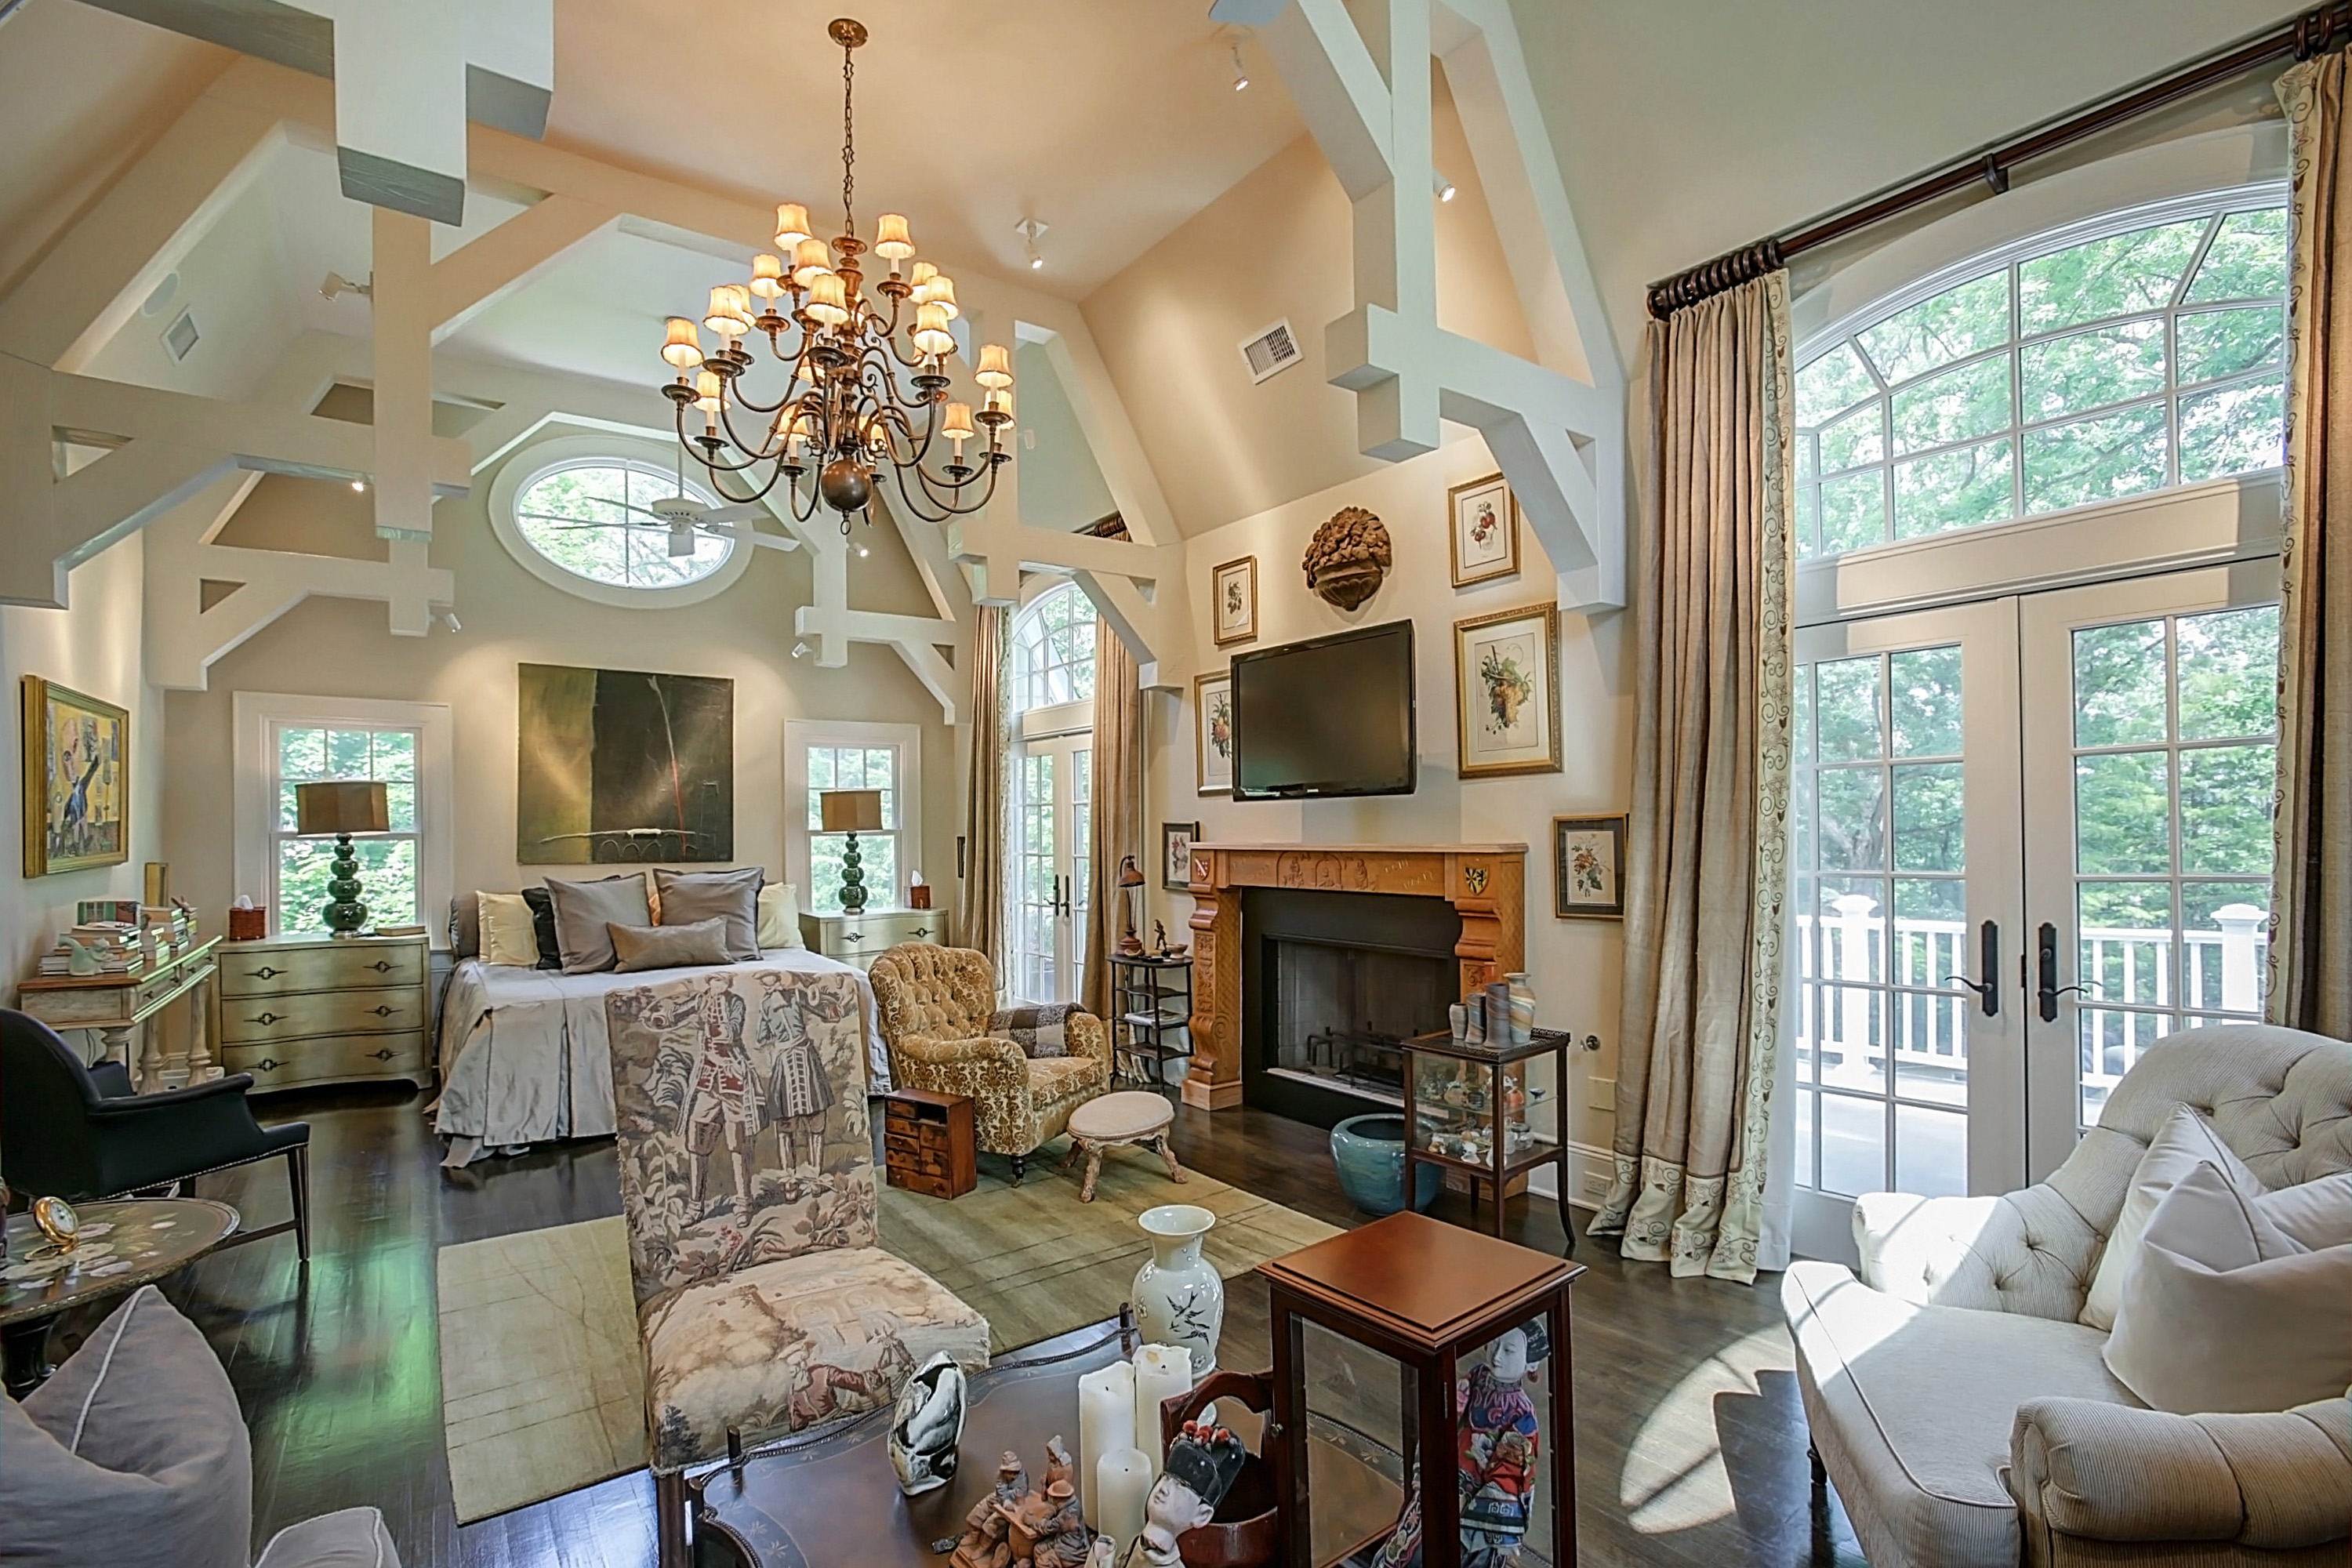 Traditional Interior Design By Ownby: Traditional Interior Design New Jersey, Bergen County